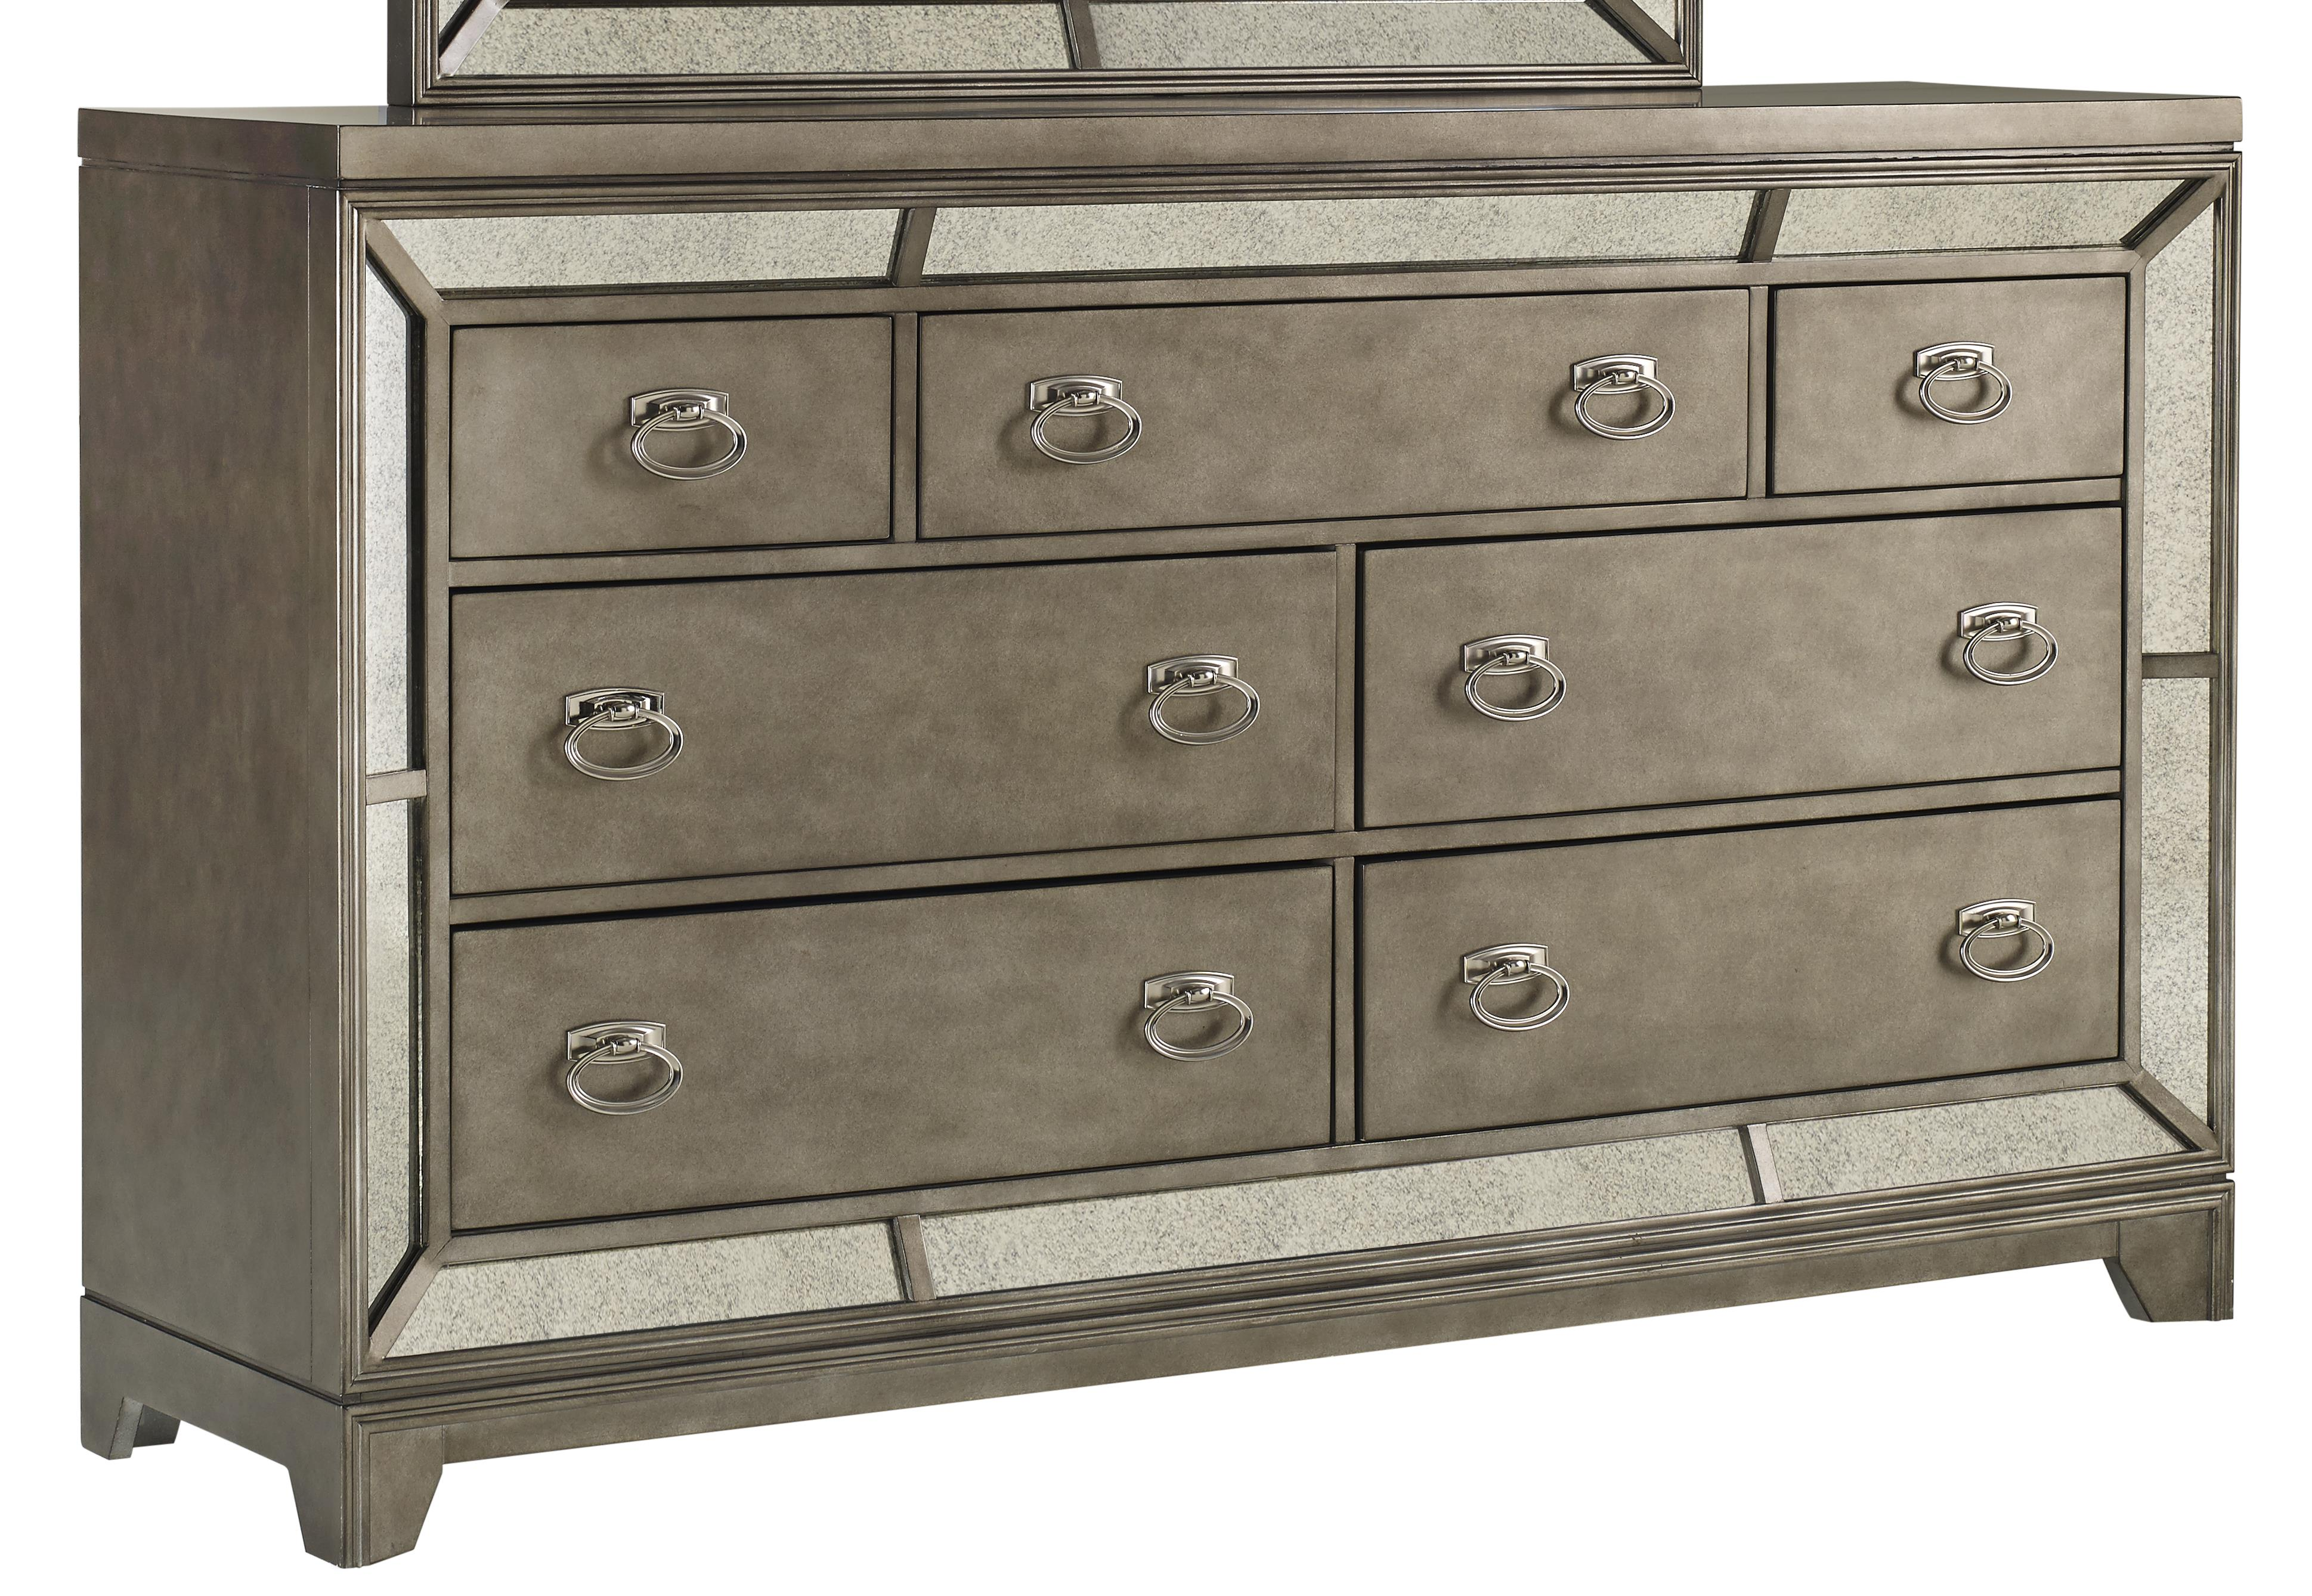 7 Drawer Dresser With Felt Lined Top Drawers Lenox By